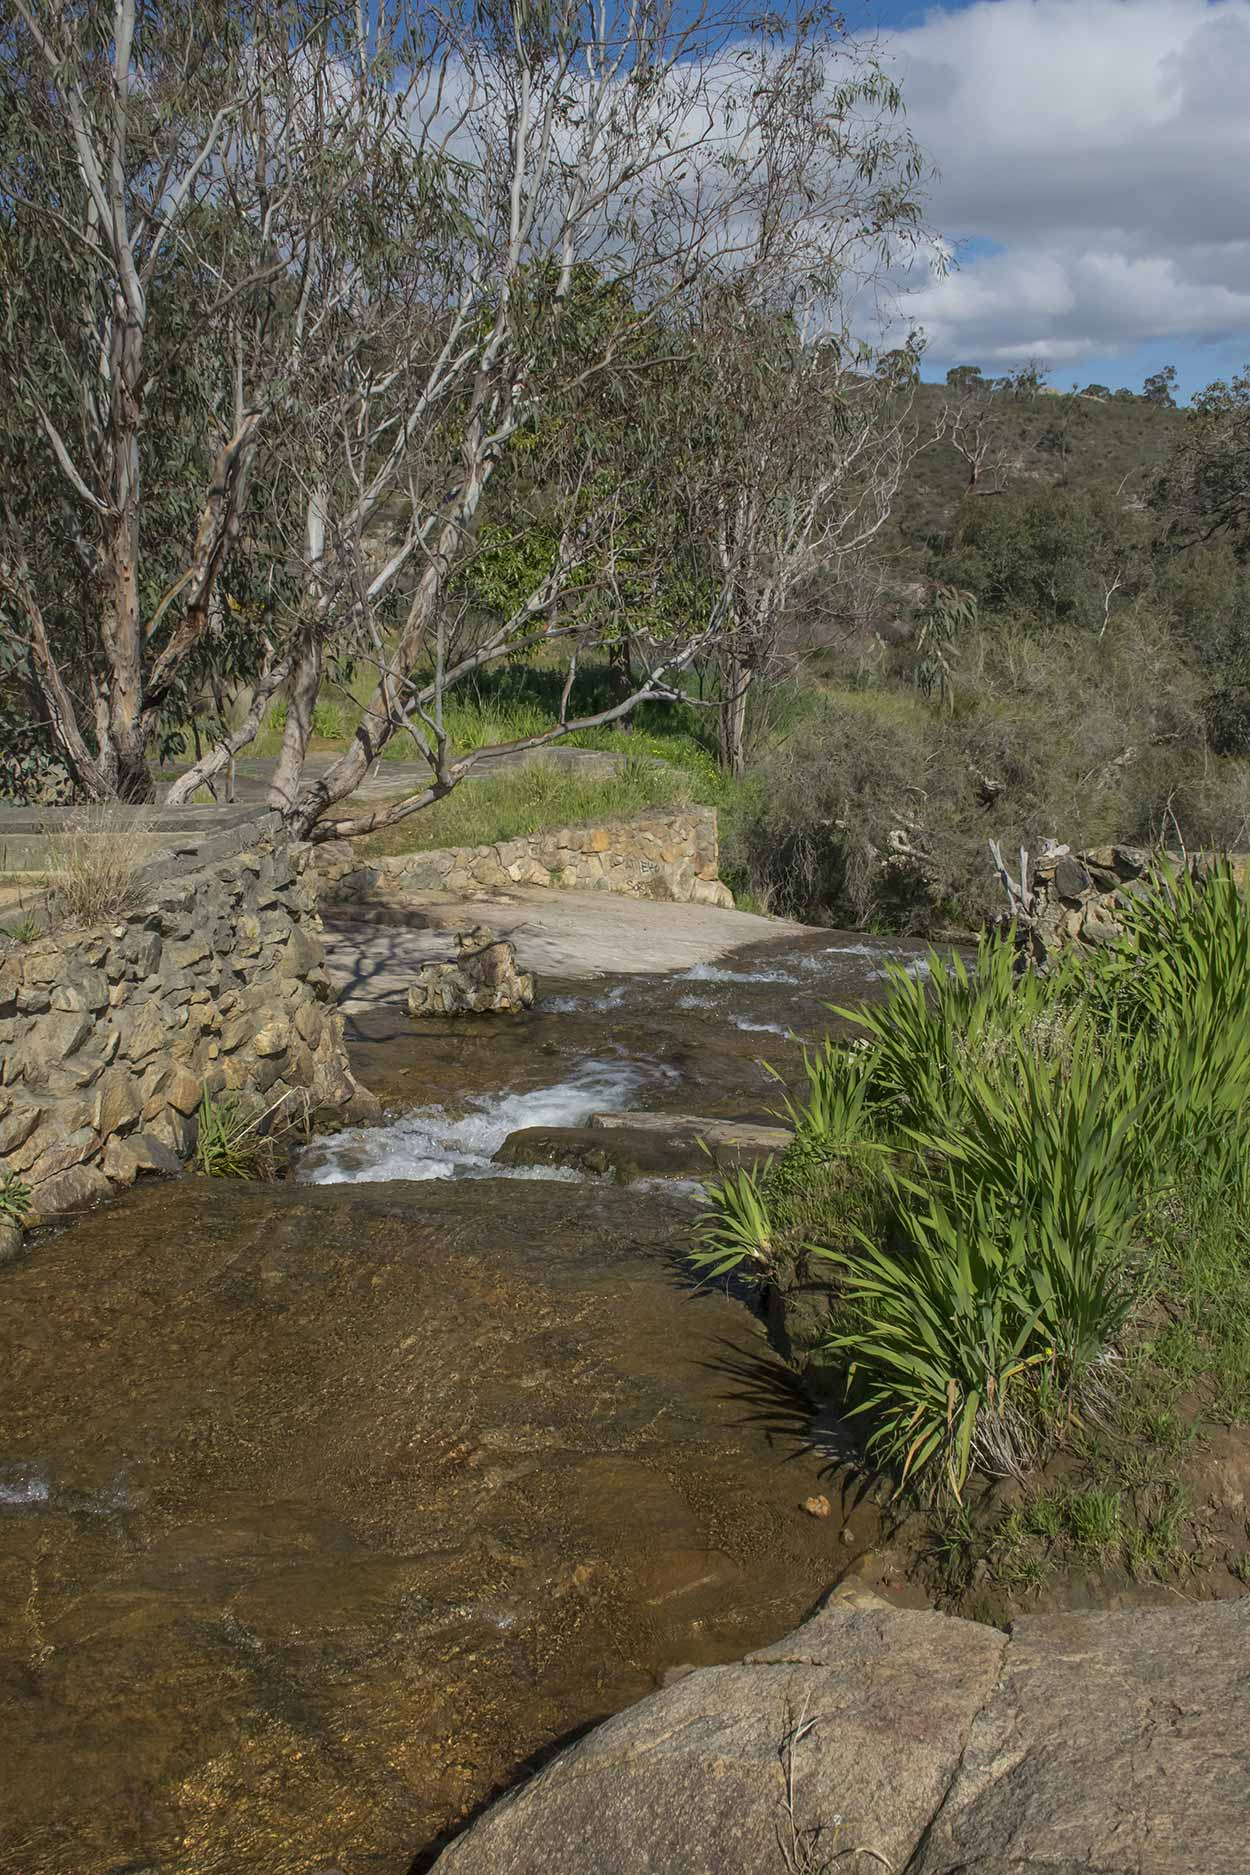 Foundations of a house which formally crossed the stream, Mundy Regional Park, Perth, Western Australia